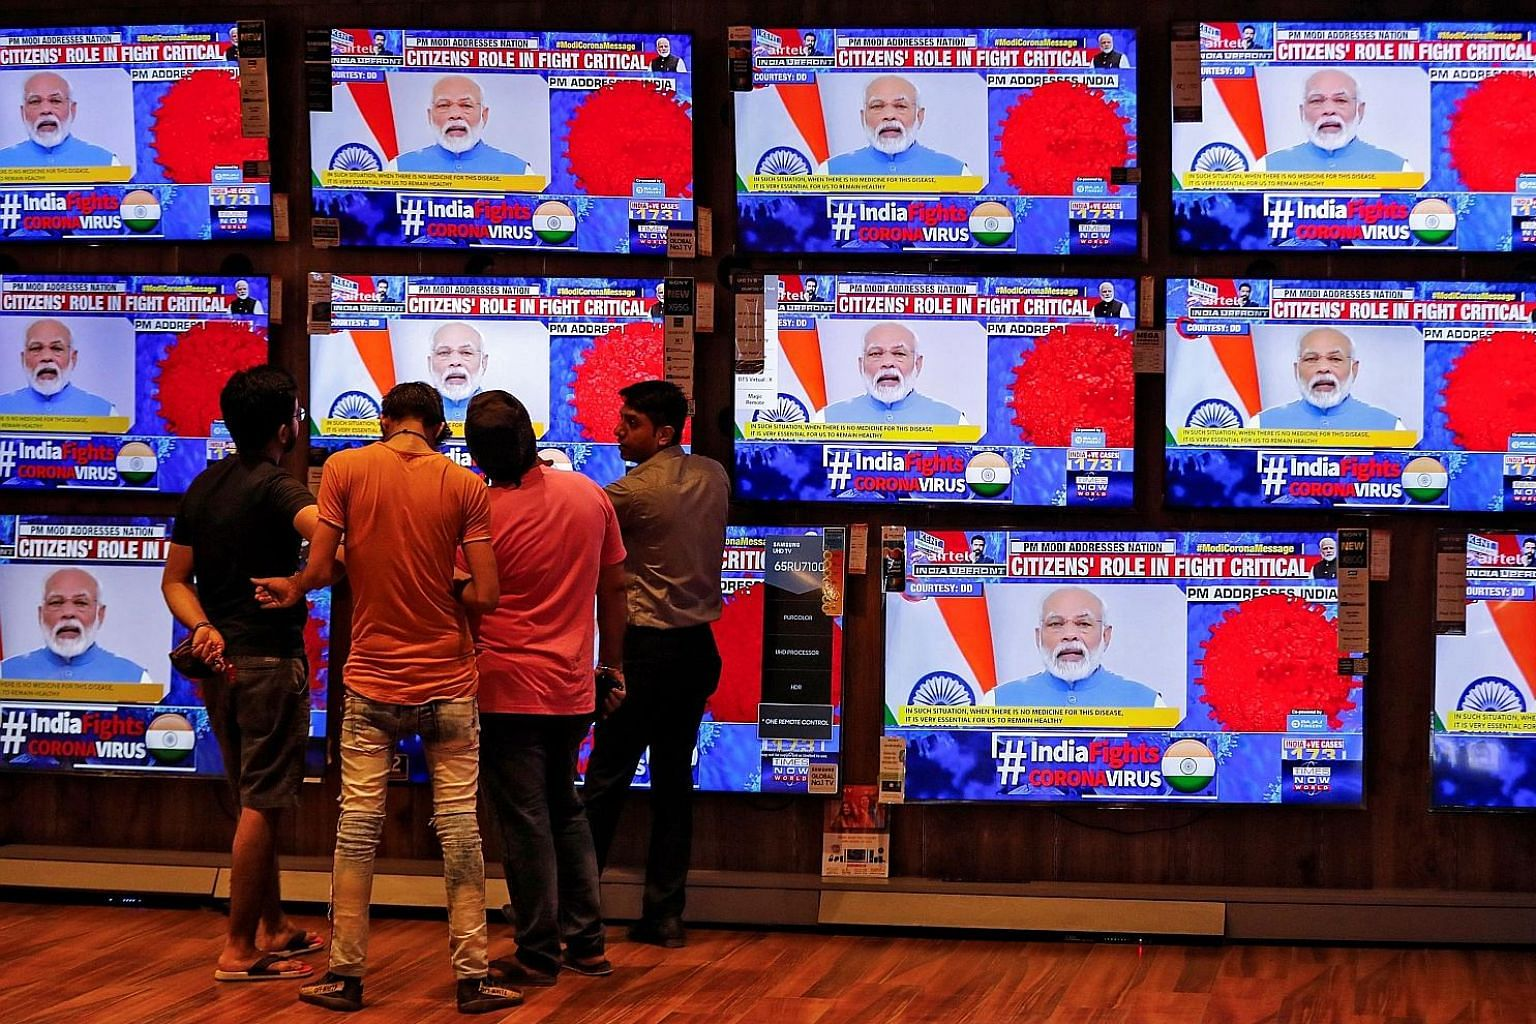 People in a showroom in Ahmedabad, India, on Thursday watching Indian Prime Minister Narendra Modi address the nation amid concerns about the coronavirus crisis. Mr Modi had earlier tried to get the leaders of member countries of the South Asian Asso